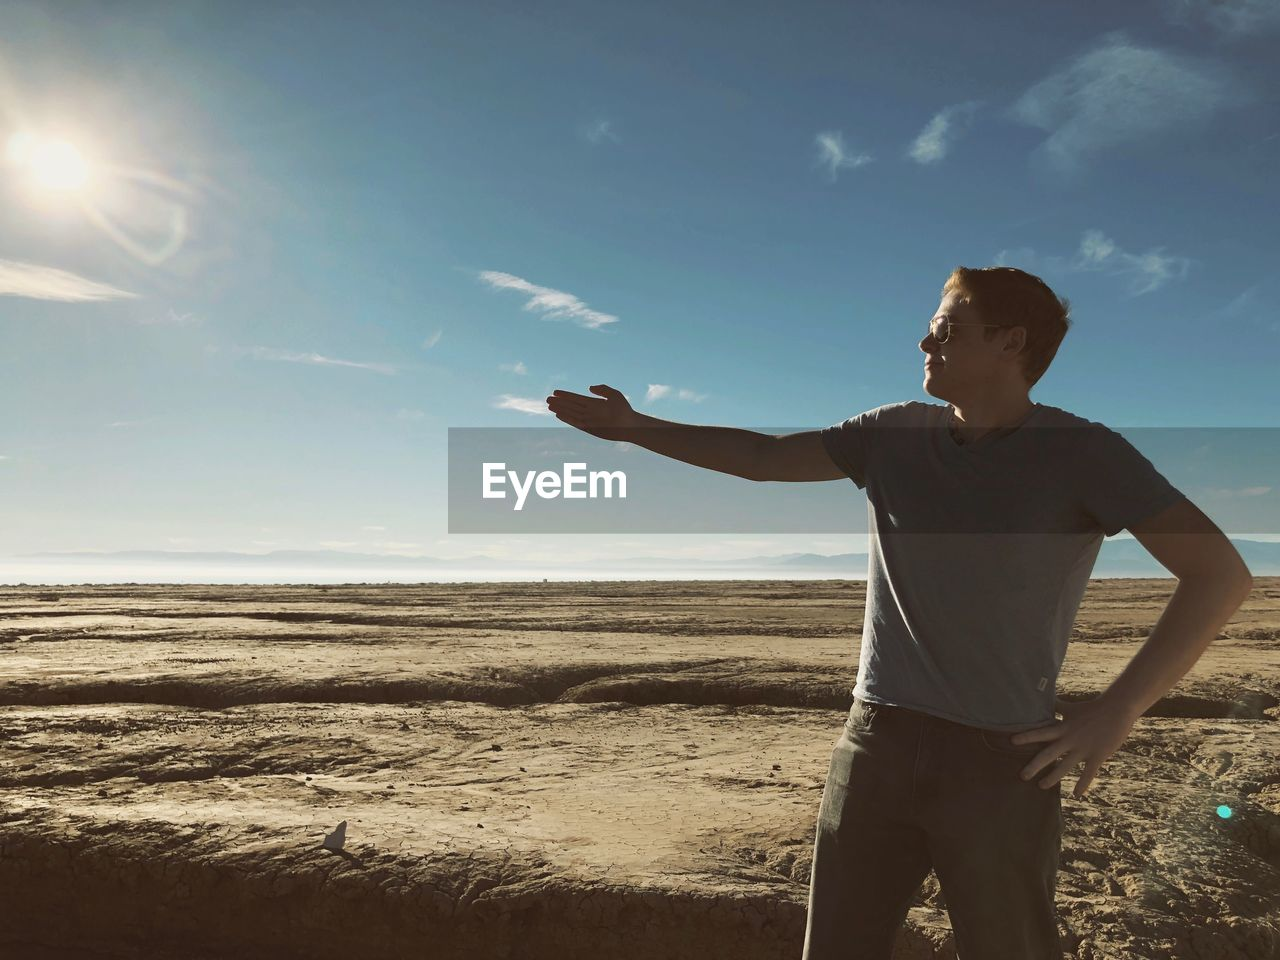 sky, one person, real people, land, lifestyles, sunlight, leisure activity, three quarter length, nature, standing, beach, beauty in nature, men, casual clothing, day, scenics - nature, water, front view, non-urban scene, outdoors, lens flare, human arm, bright